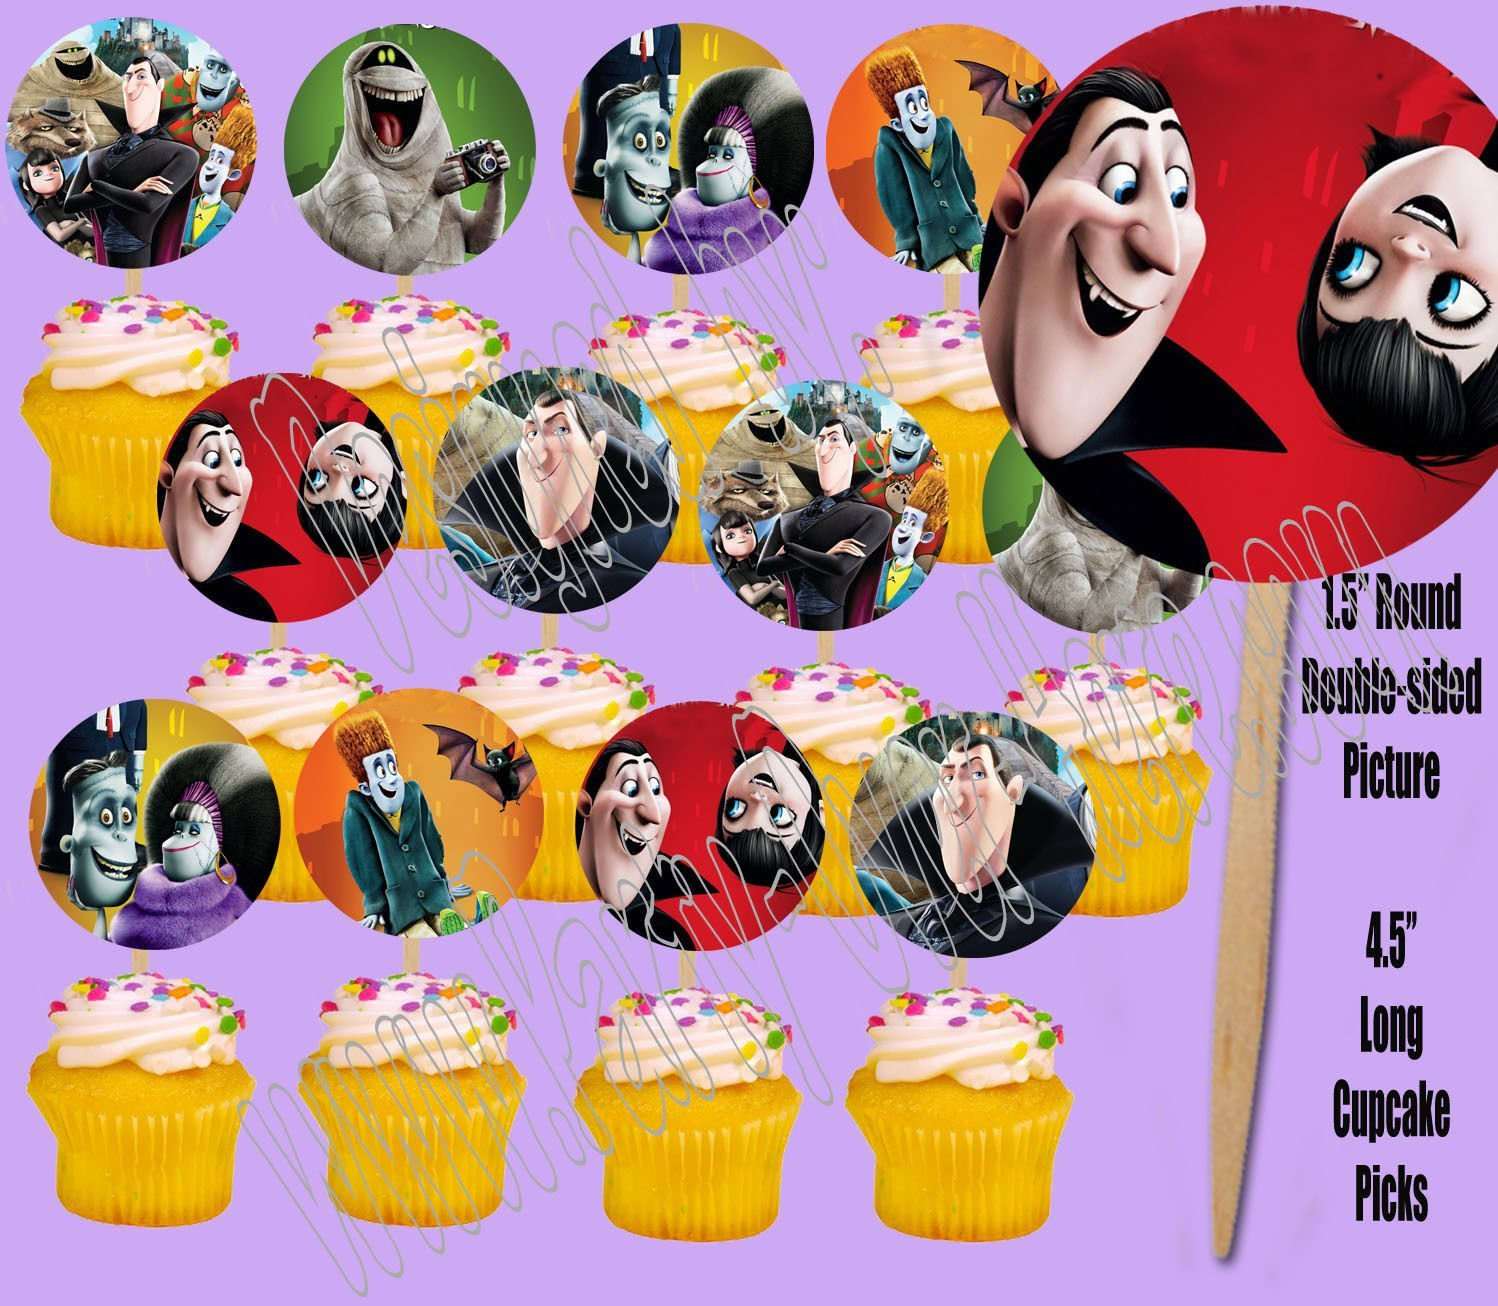 HOTEL TRANSYLVANIA Movie Double-Sided Cupcake Picks Cake Toppers -12 pcs